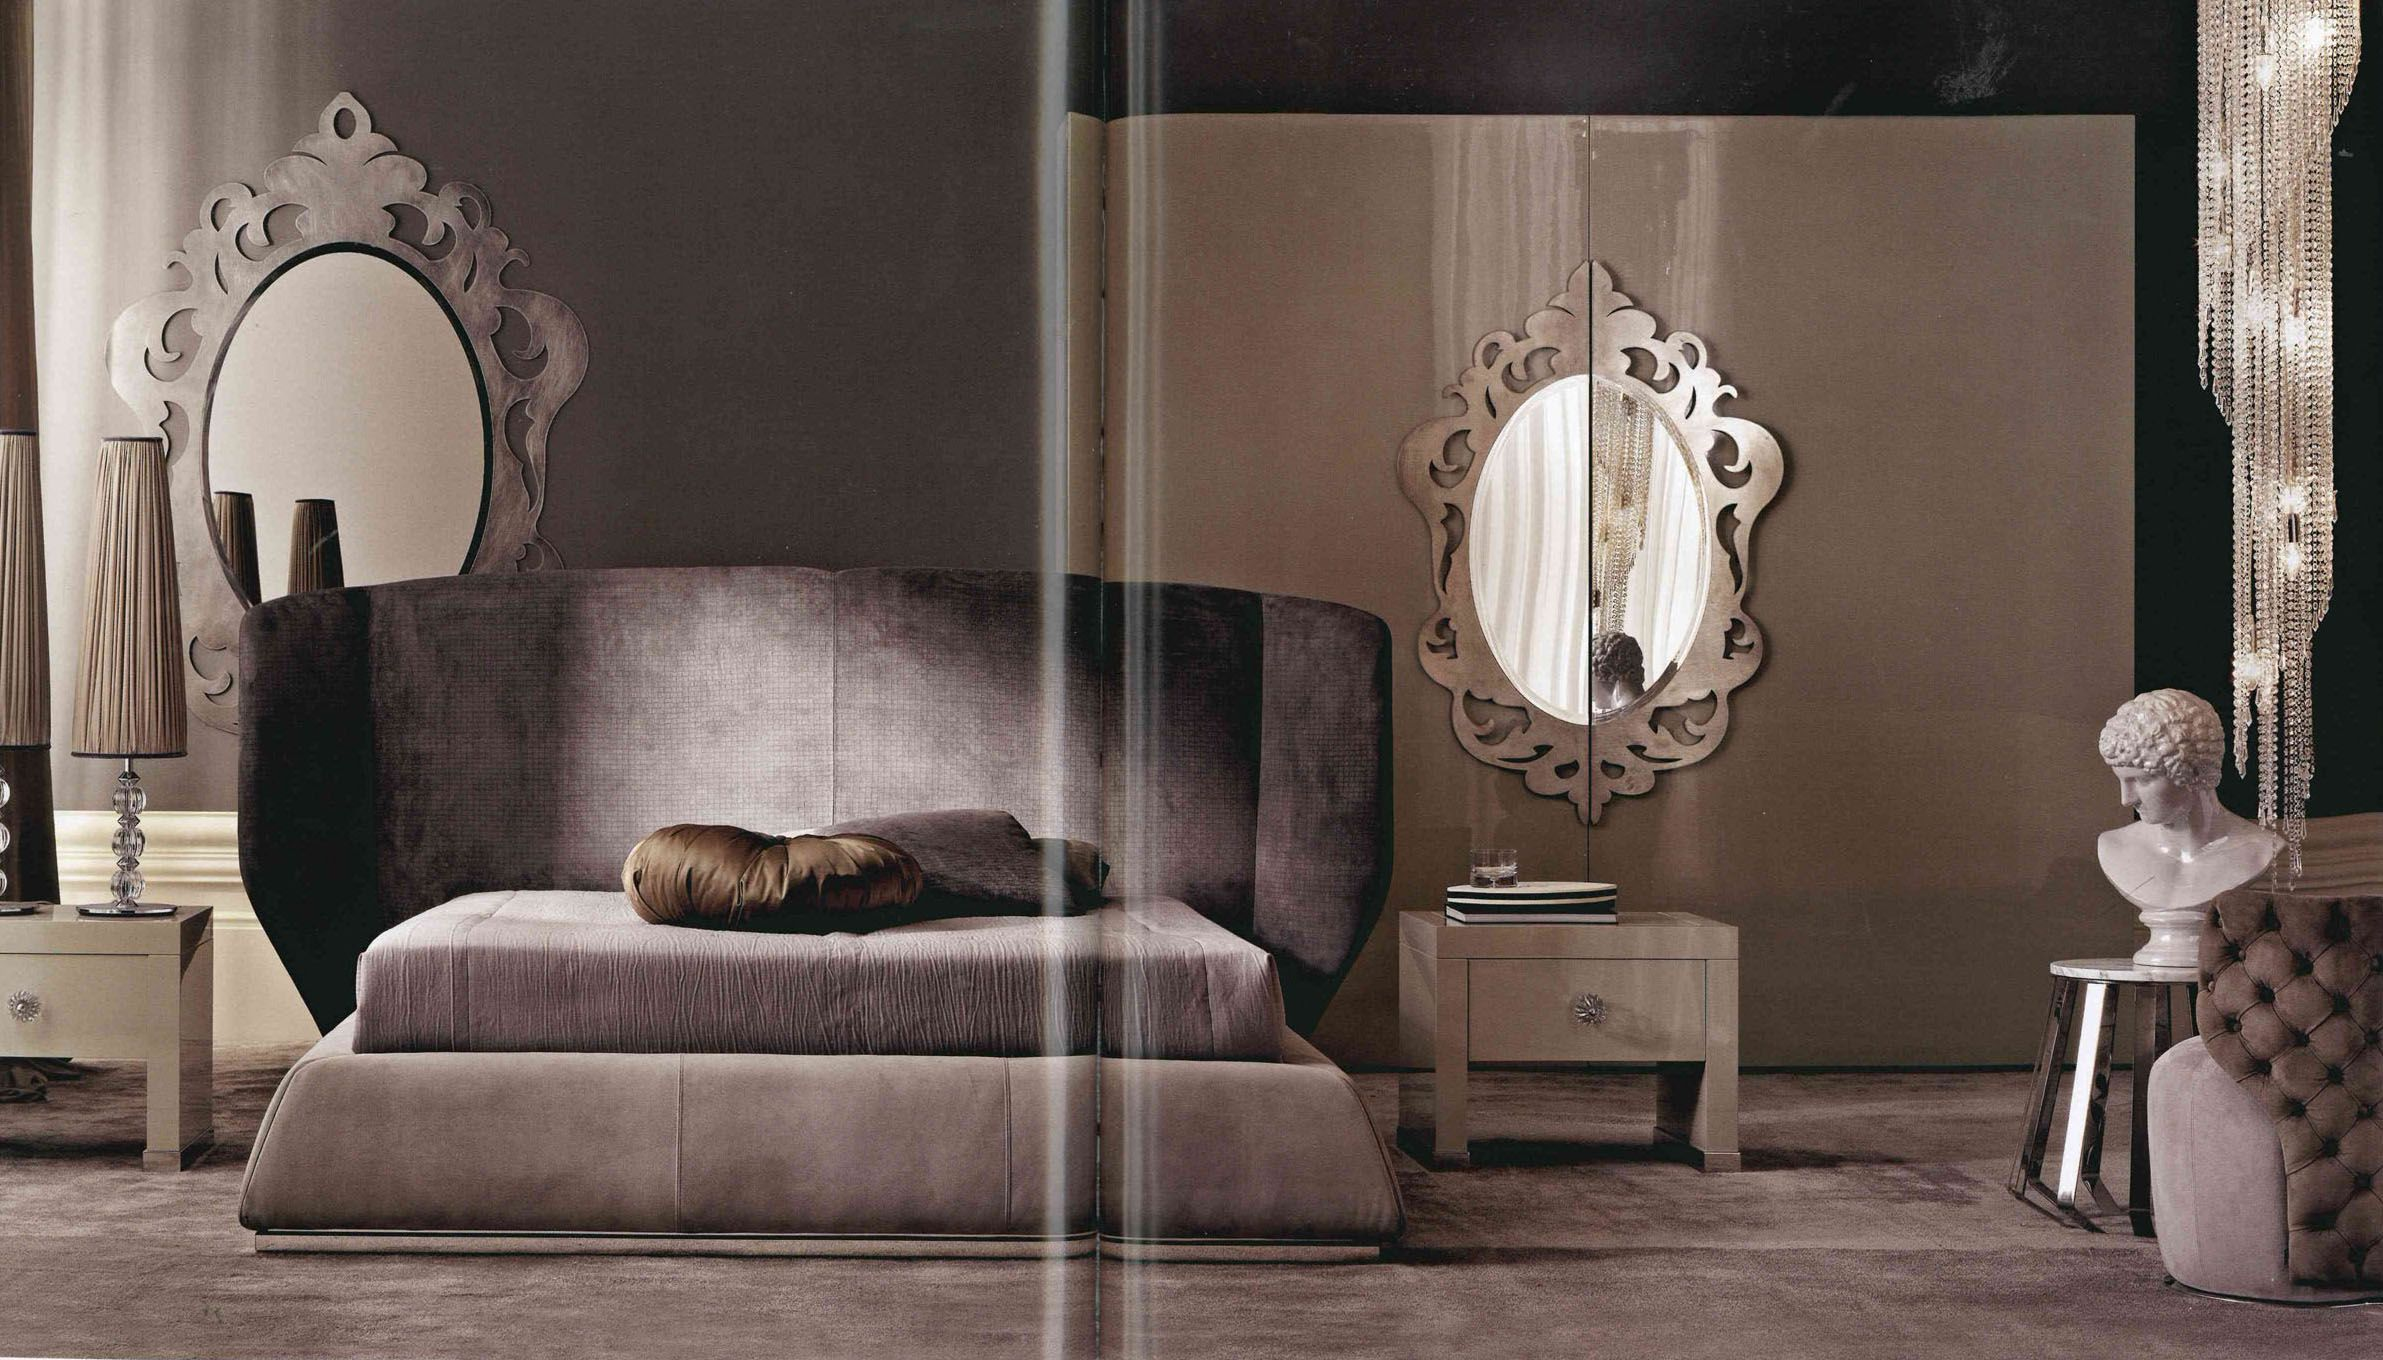 glamour interior - Buscar con Google | BED | Pinterest | Glamour ...